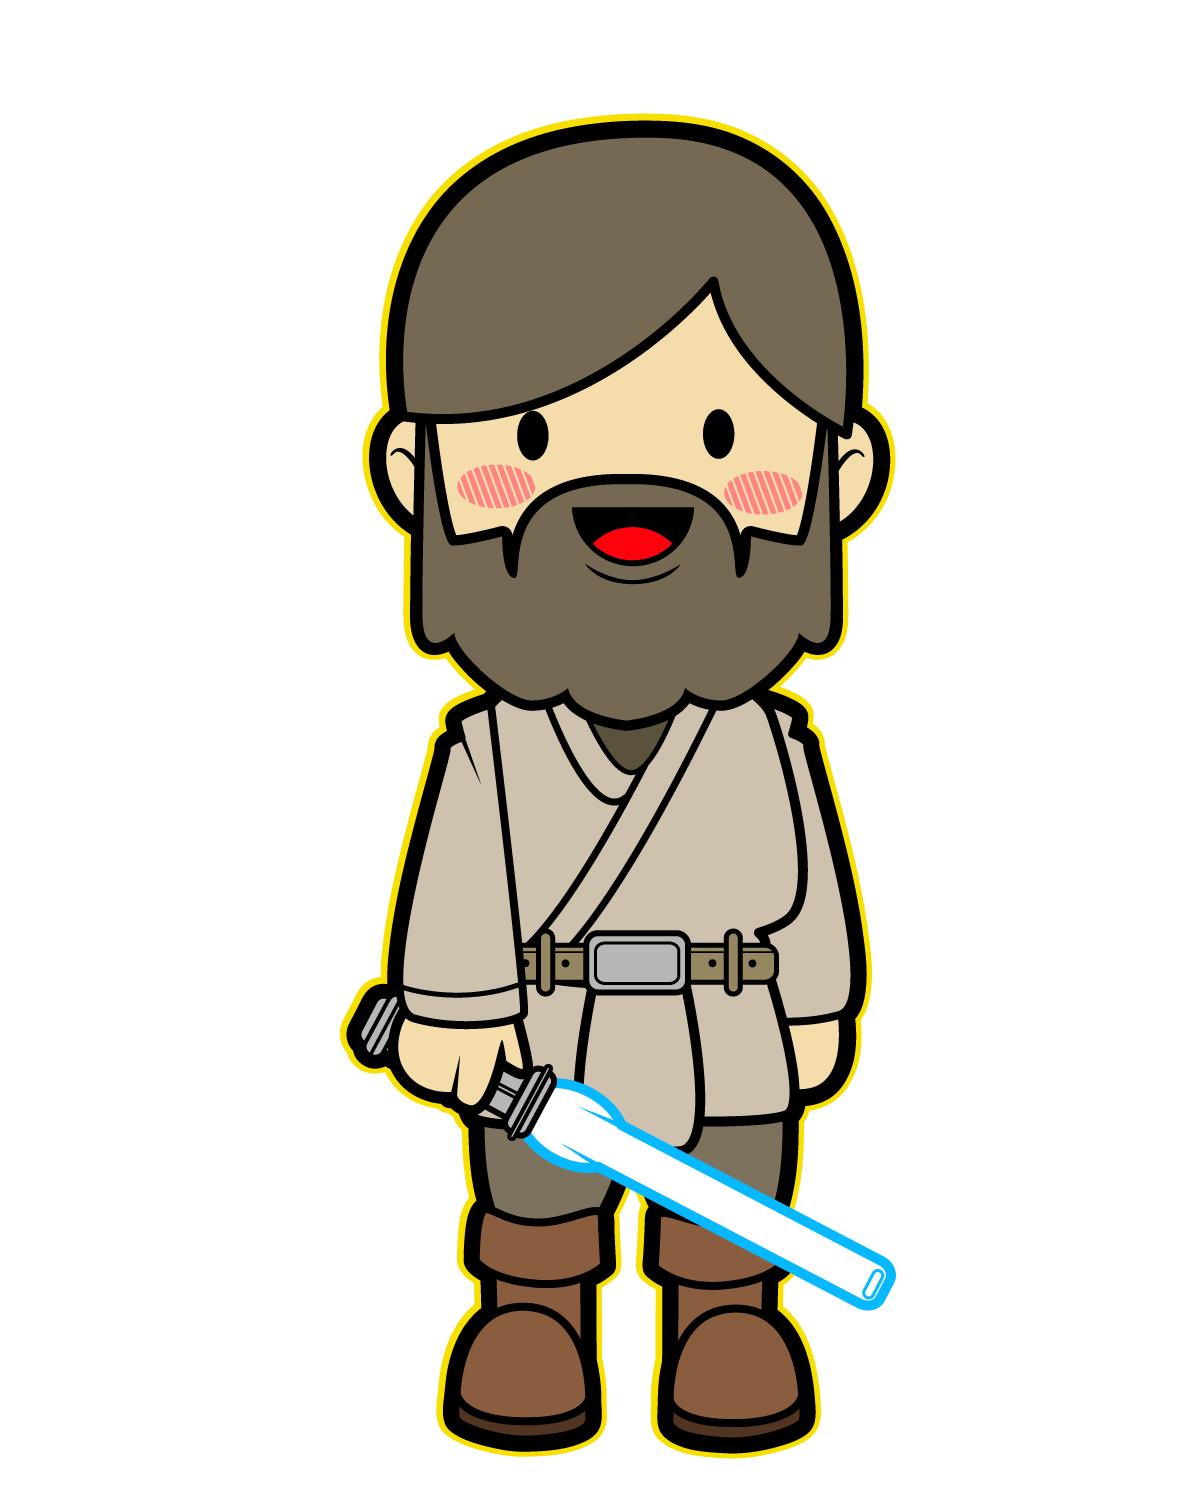 1200x1500 I Really Love Star Wars Xd Movies, Games And Anything! And This Is